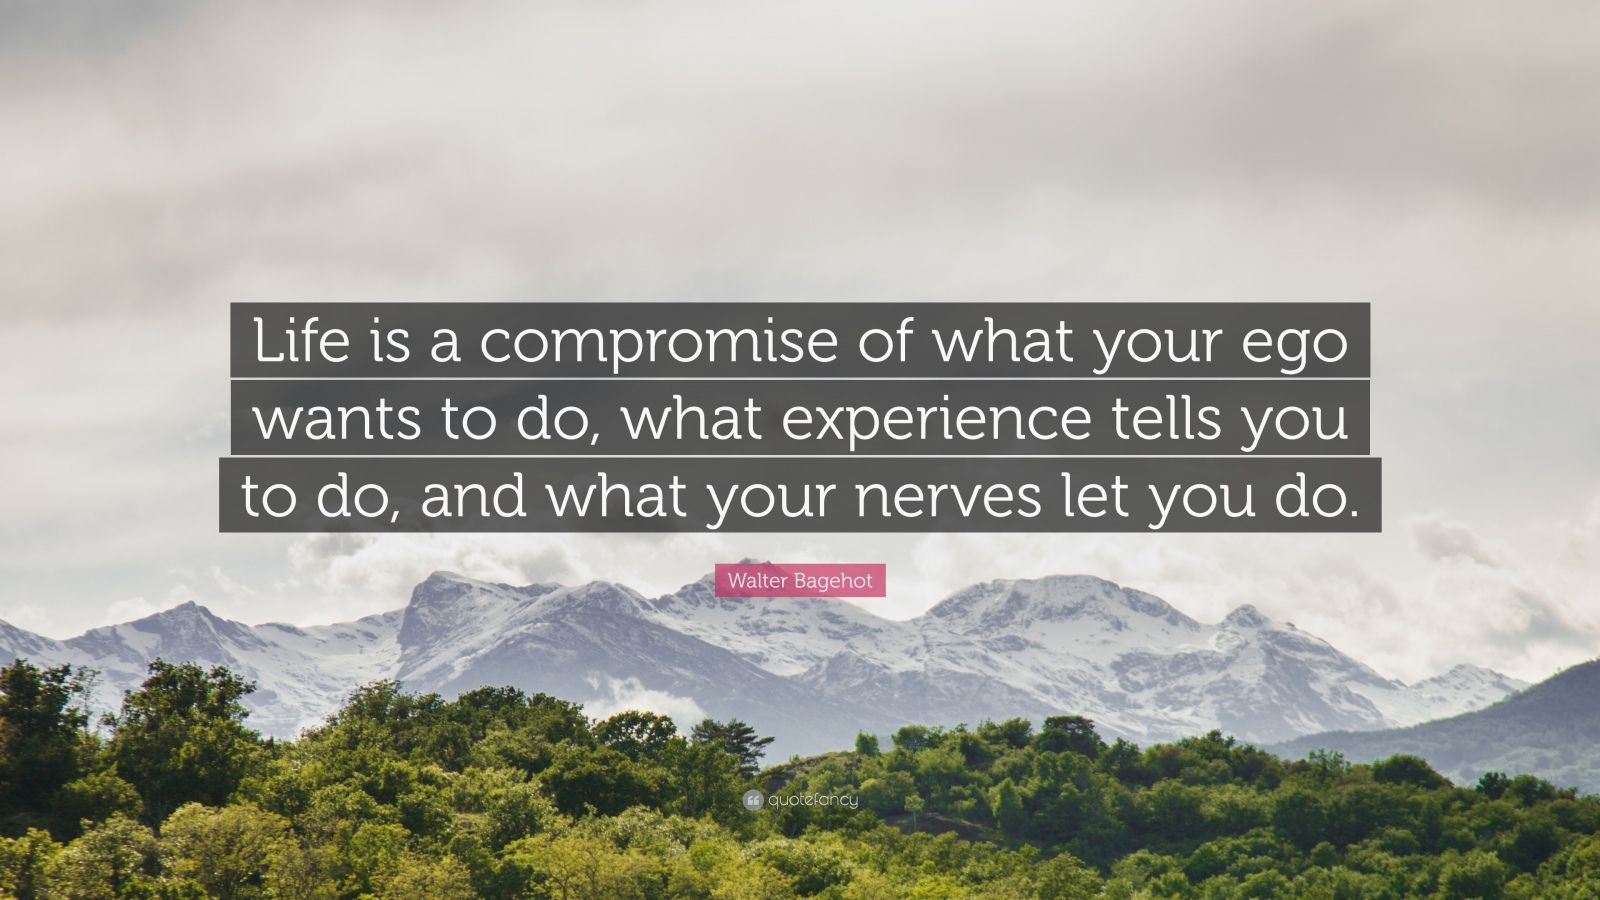 """Walter Bagehot Quote: """"Life is a compromise of what your ego wants to do, what experience tells you to do, and what your nerves let you do."""""""